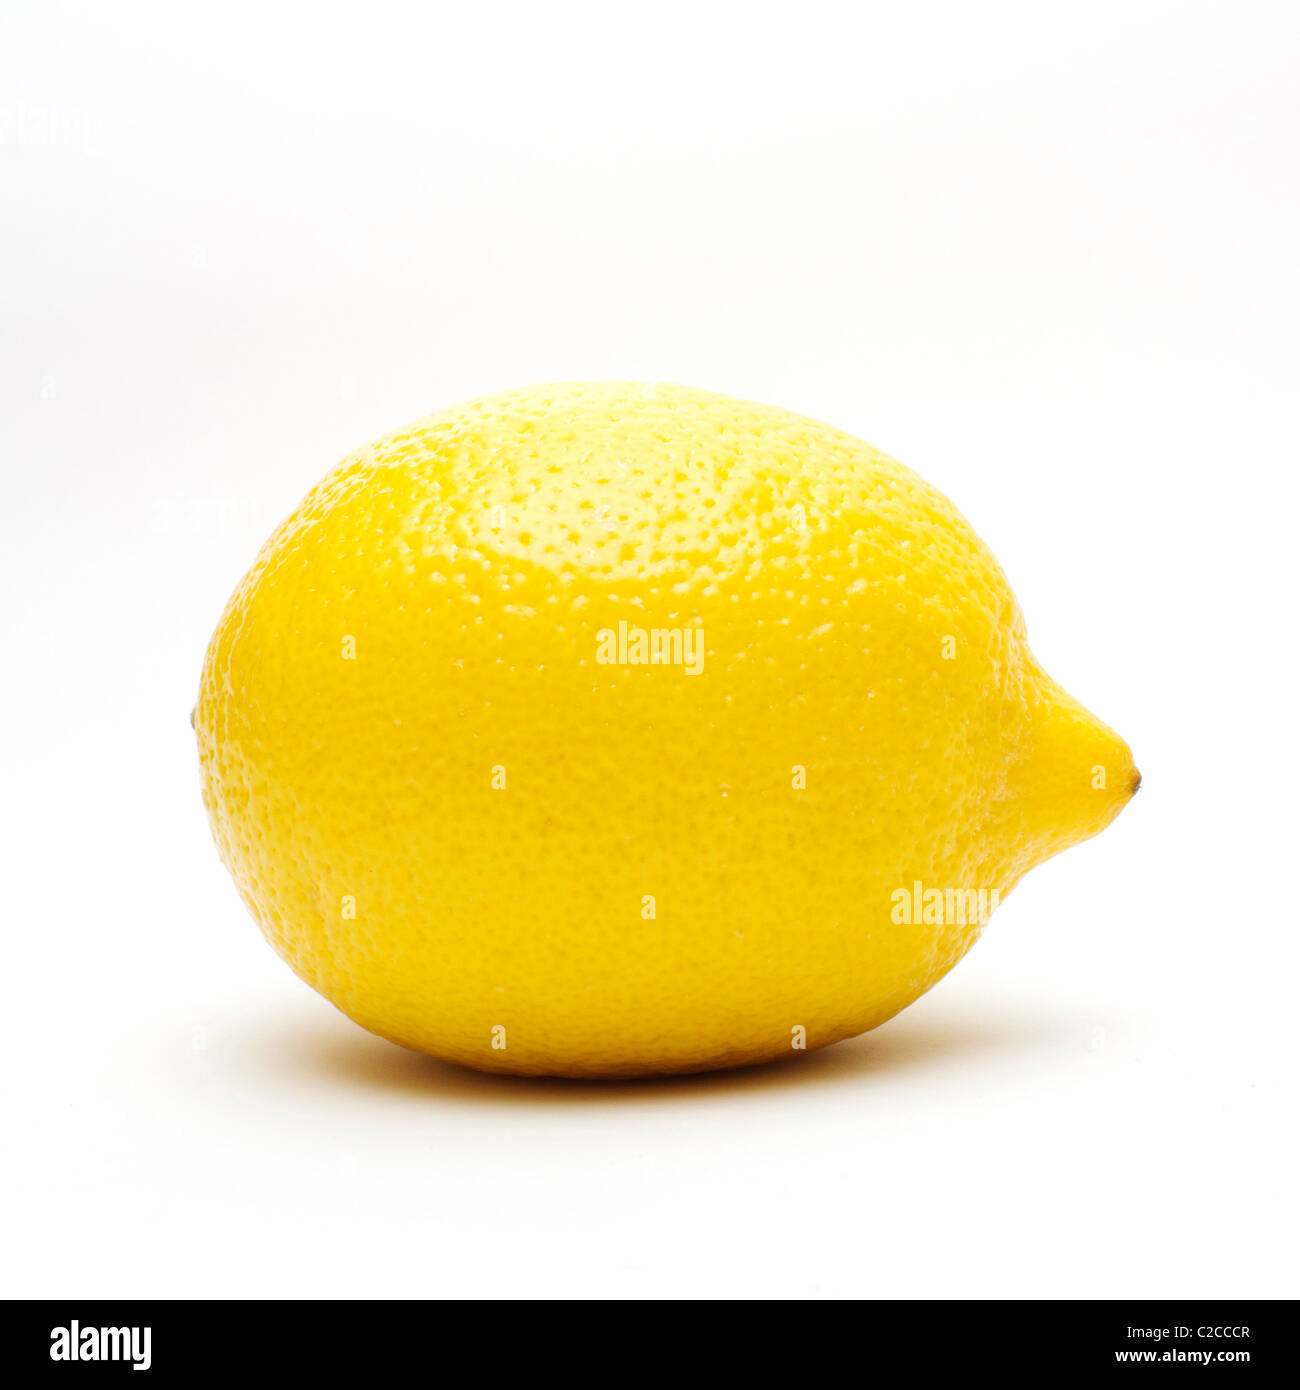 A single lemon in a high-key all white set up. - Stock Image